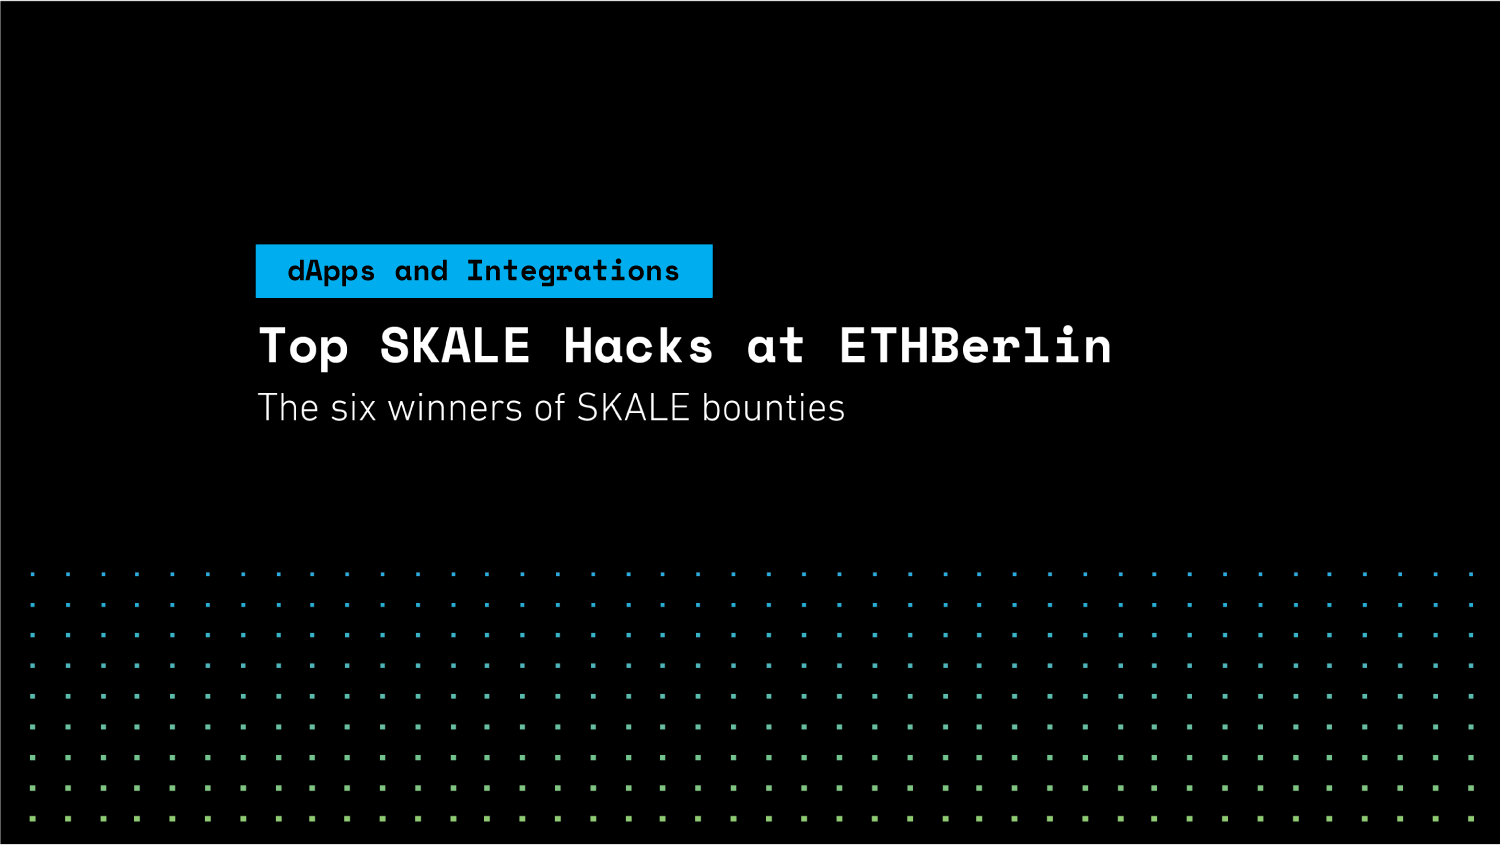 Top SKALE Hacks @ ETHBerlin